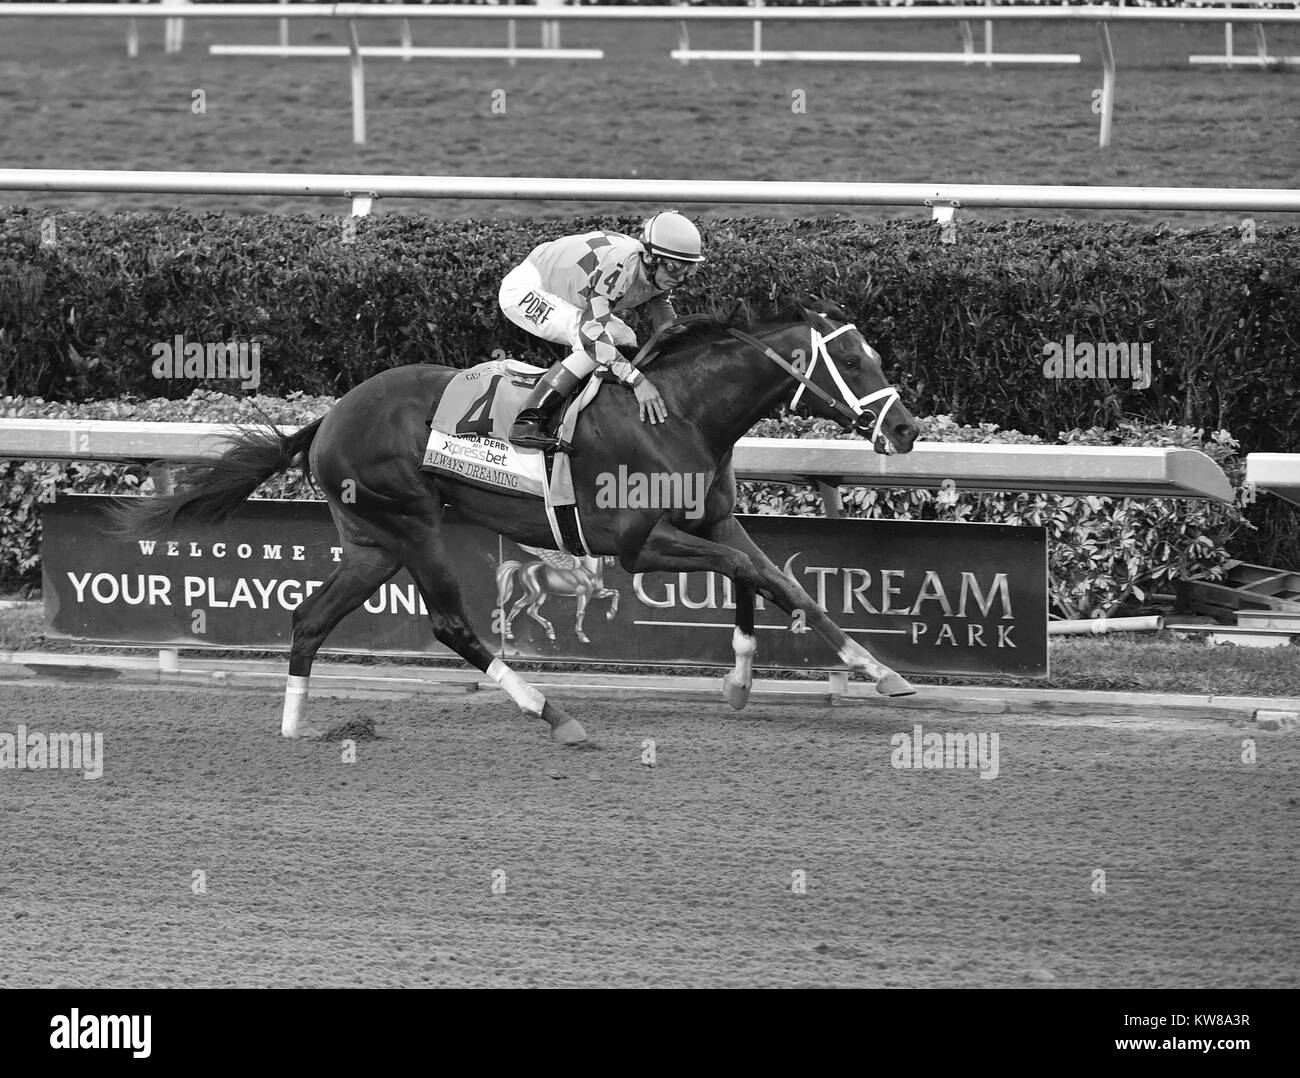 HALLANDALE, FL - APRIL 01: FILE PHOTO - Always Dreaming (#4) owned by Anthony Bonomo and Brooklyn Boyz Stables gets - Stock Image